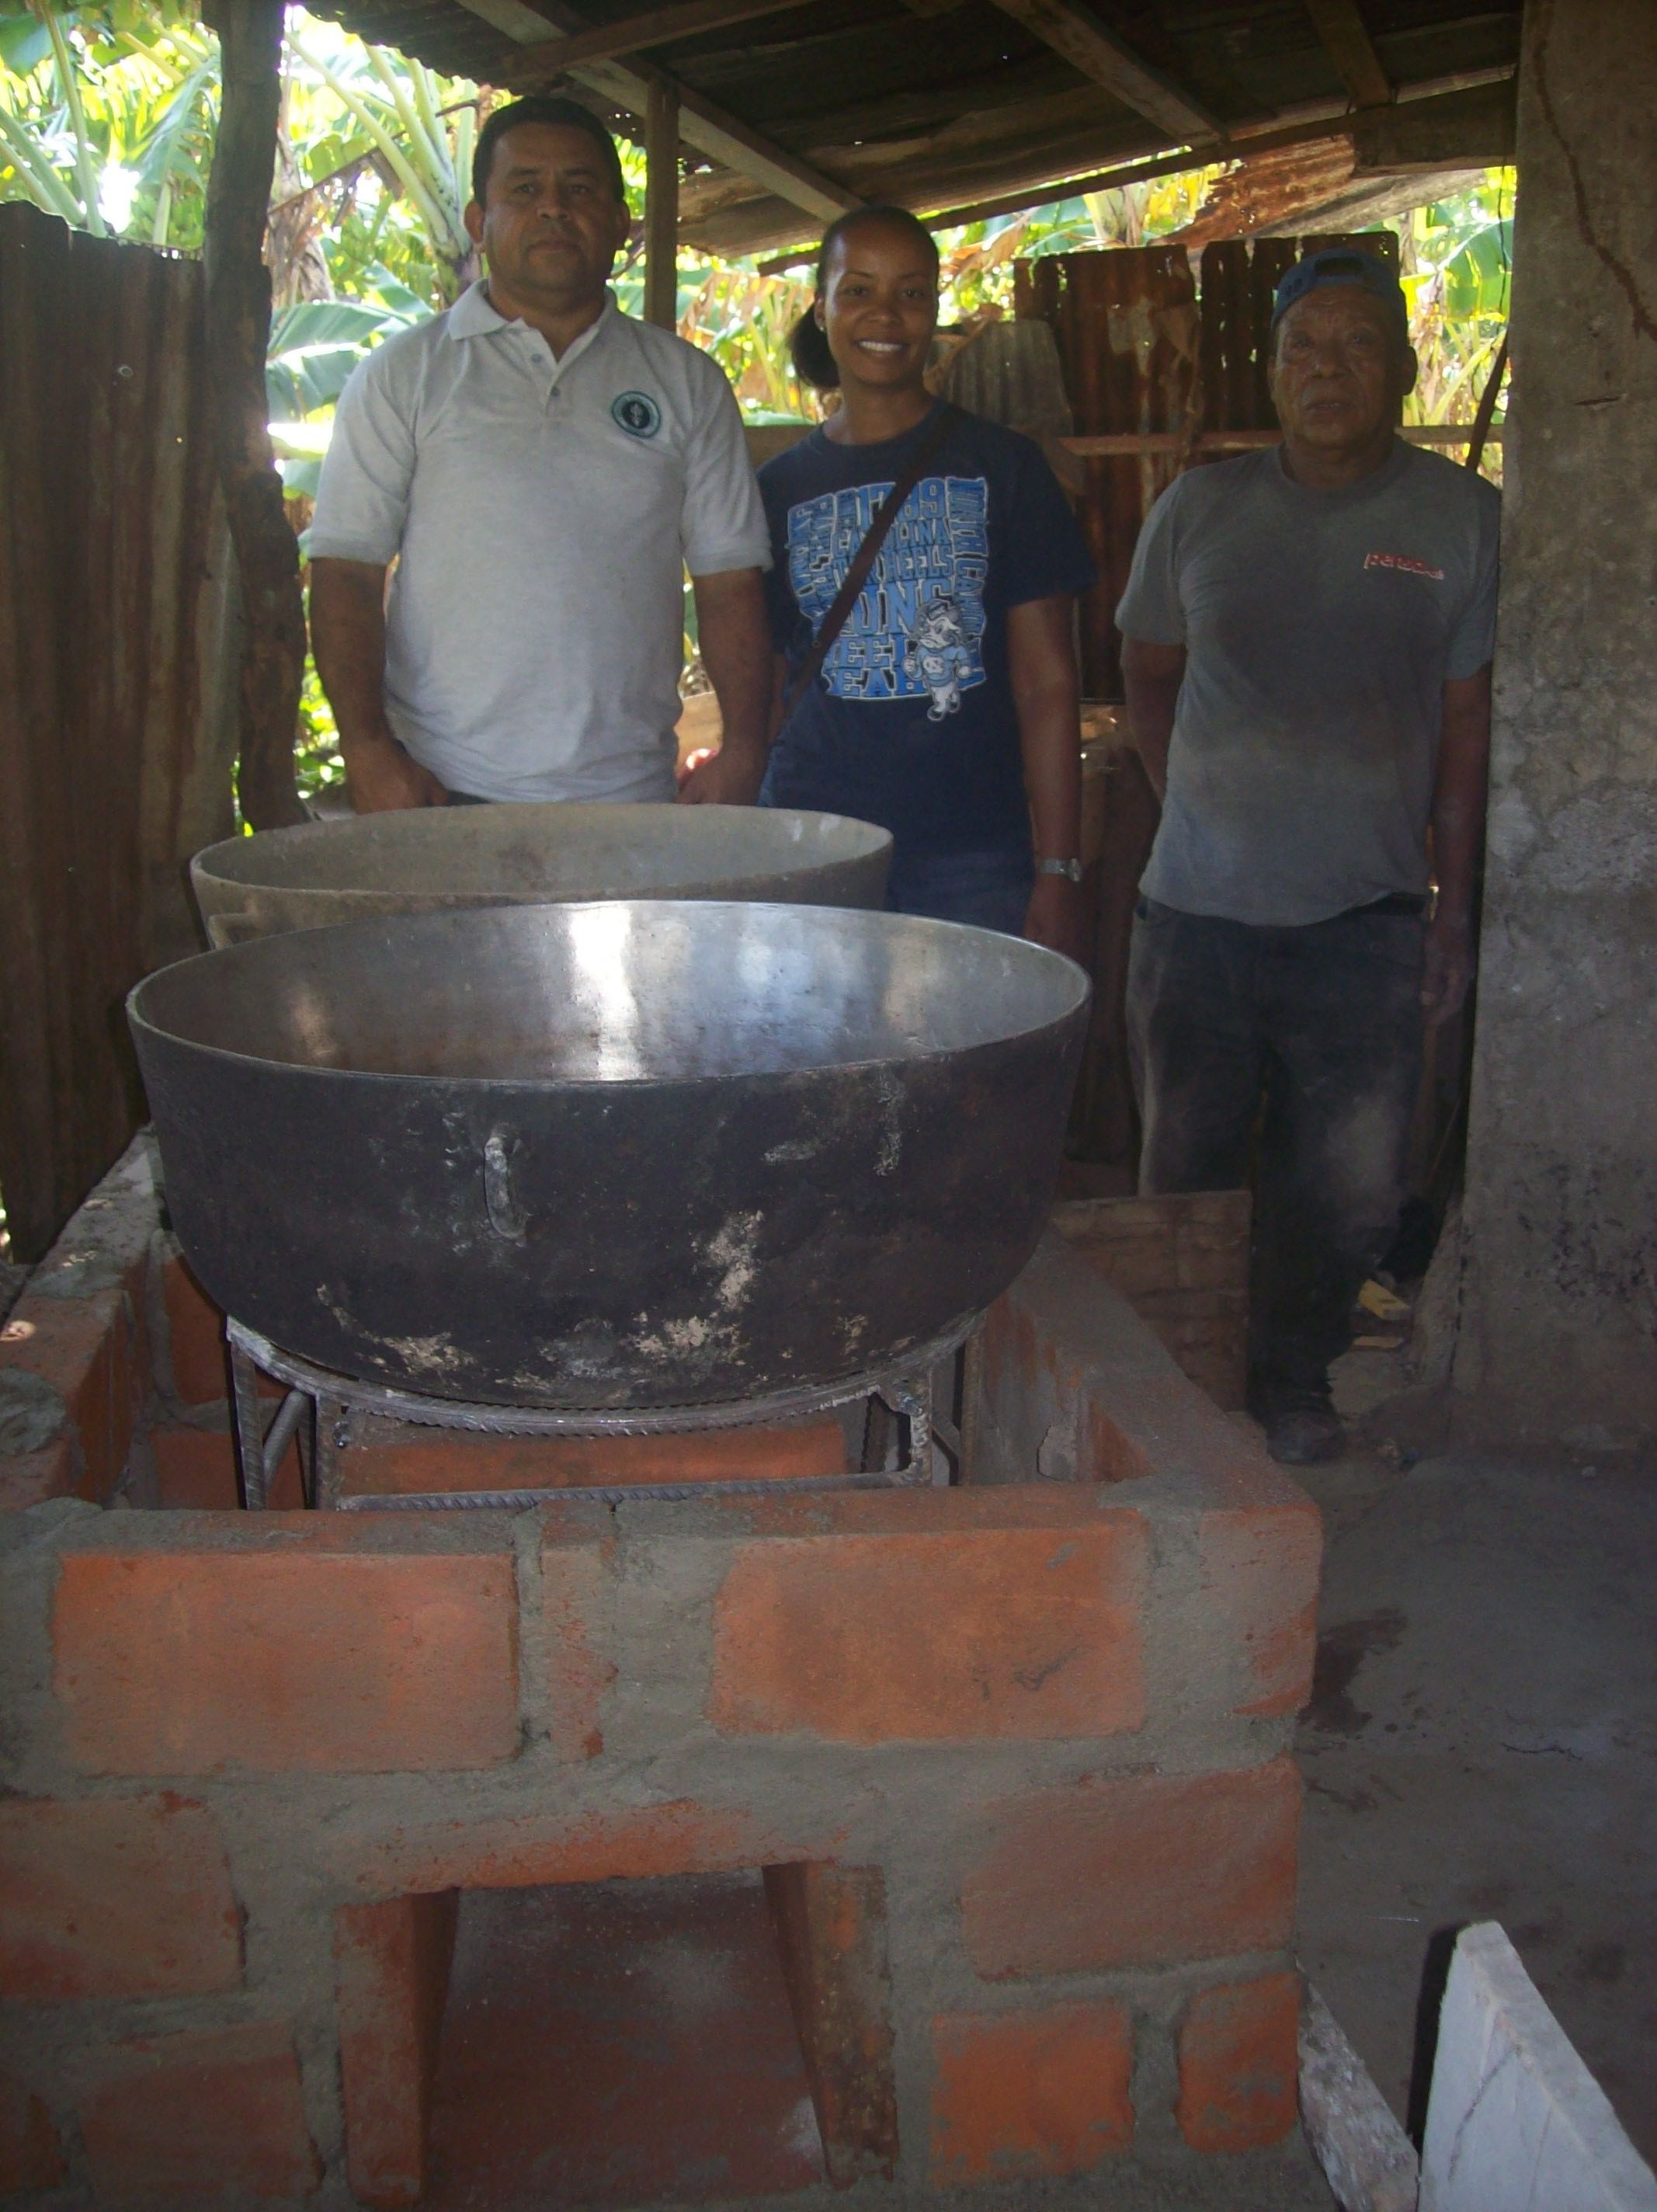 LaTaurus, Trujillo, and Rogelio stand beside the first wood-conserving stove in La Pedregosa.